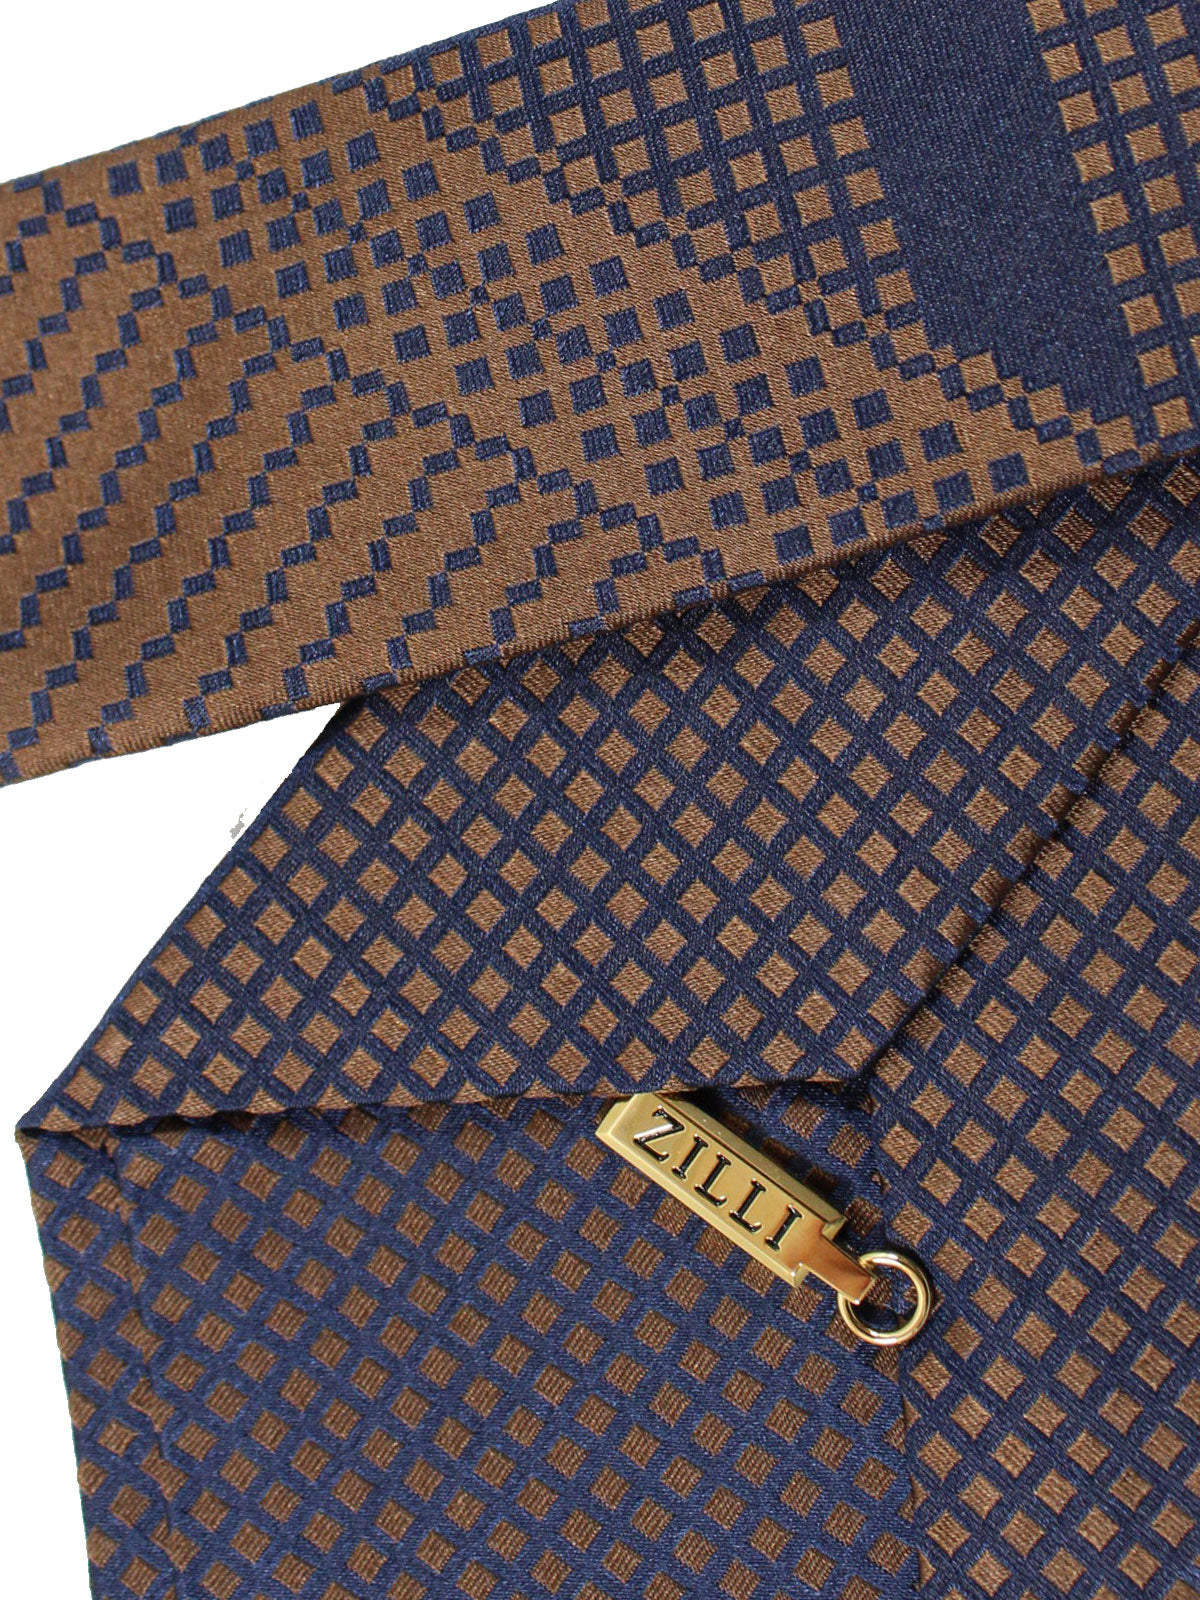 Zilli Silk Tie Brown Midnight Blue Unique Design